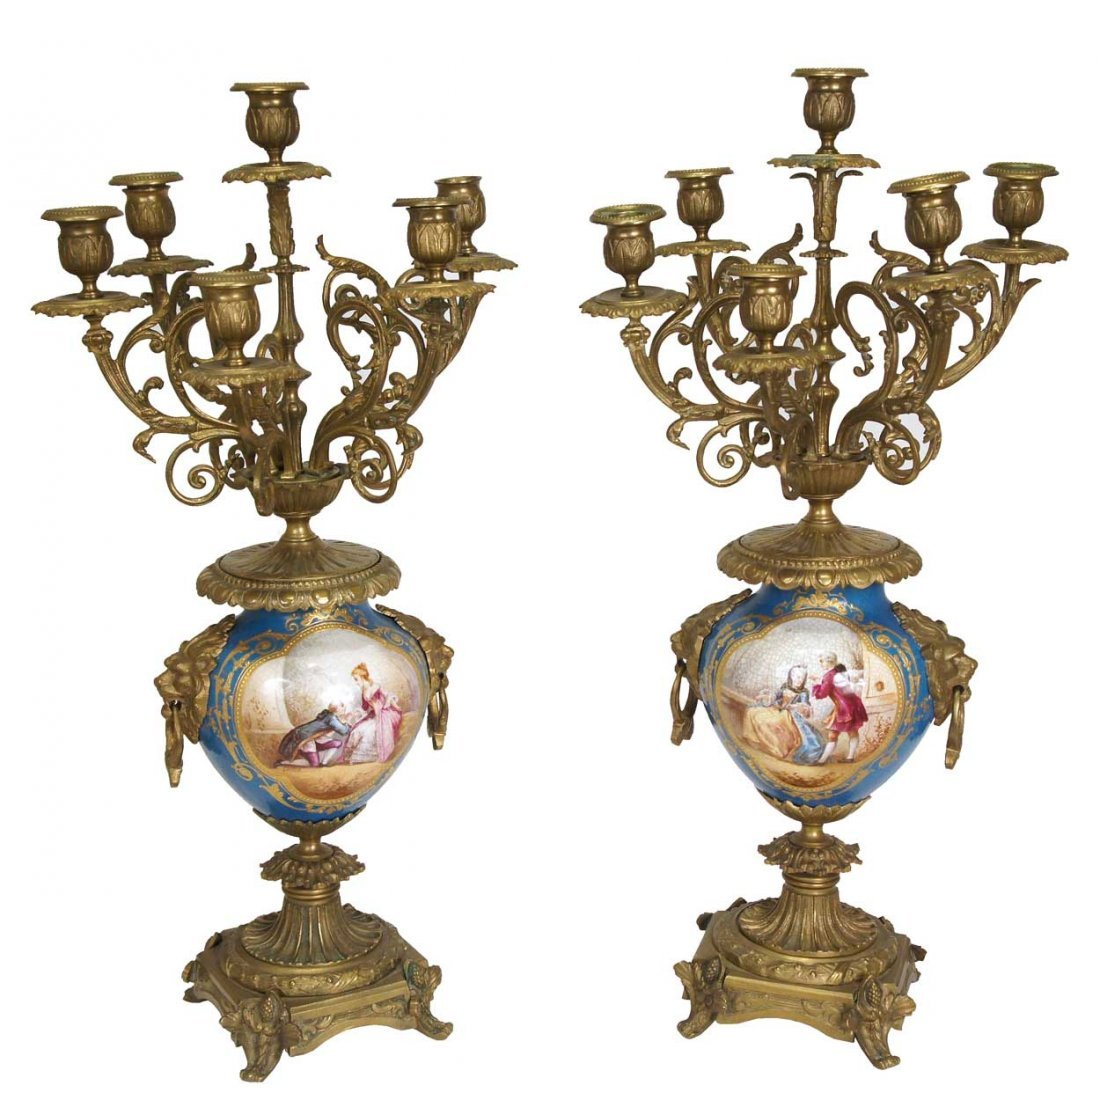 22: A Pair of French Louis XVI Style Garniture, Height